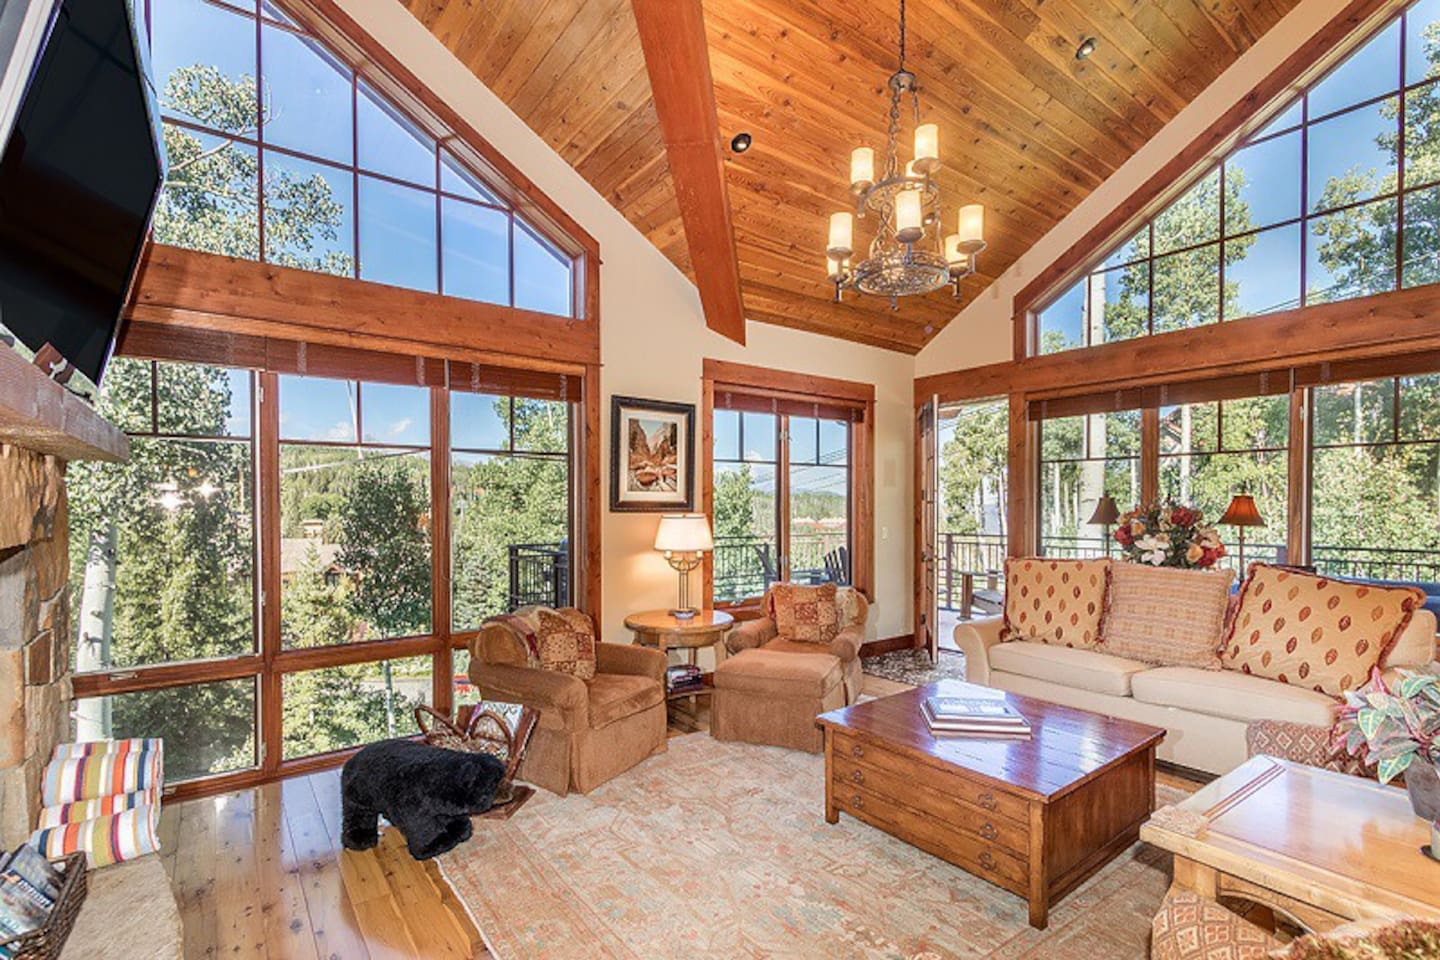 Bright, spacious main living area with comfortable seating